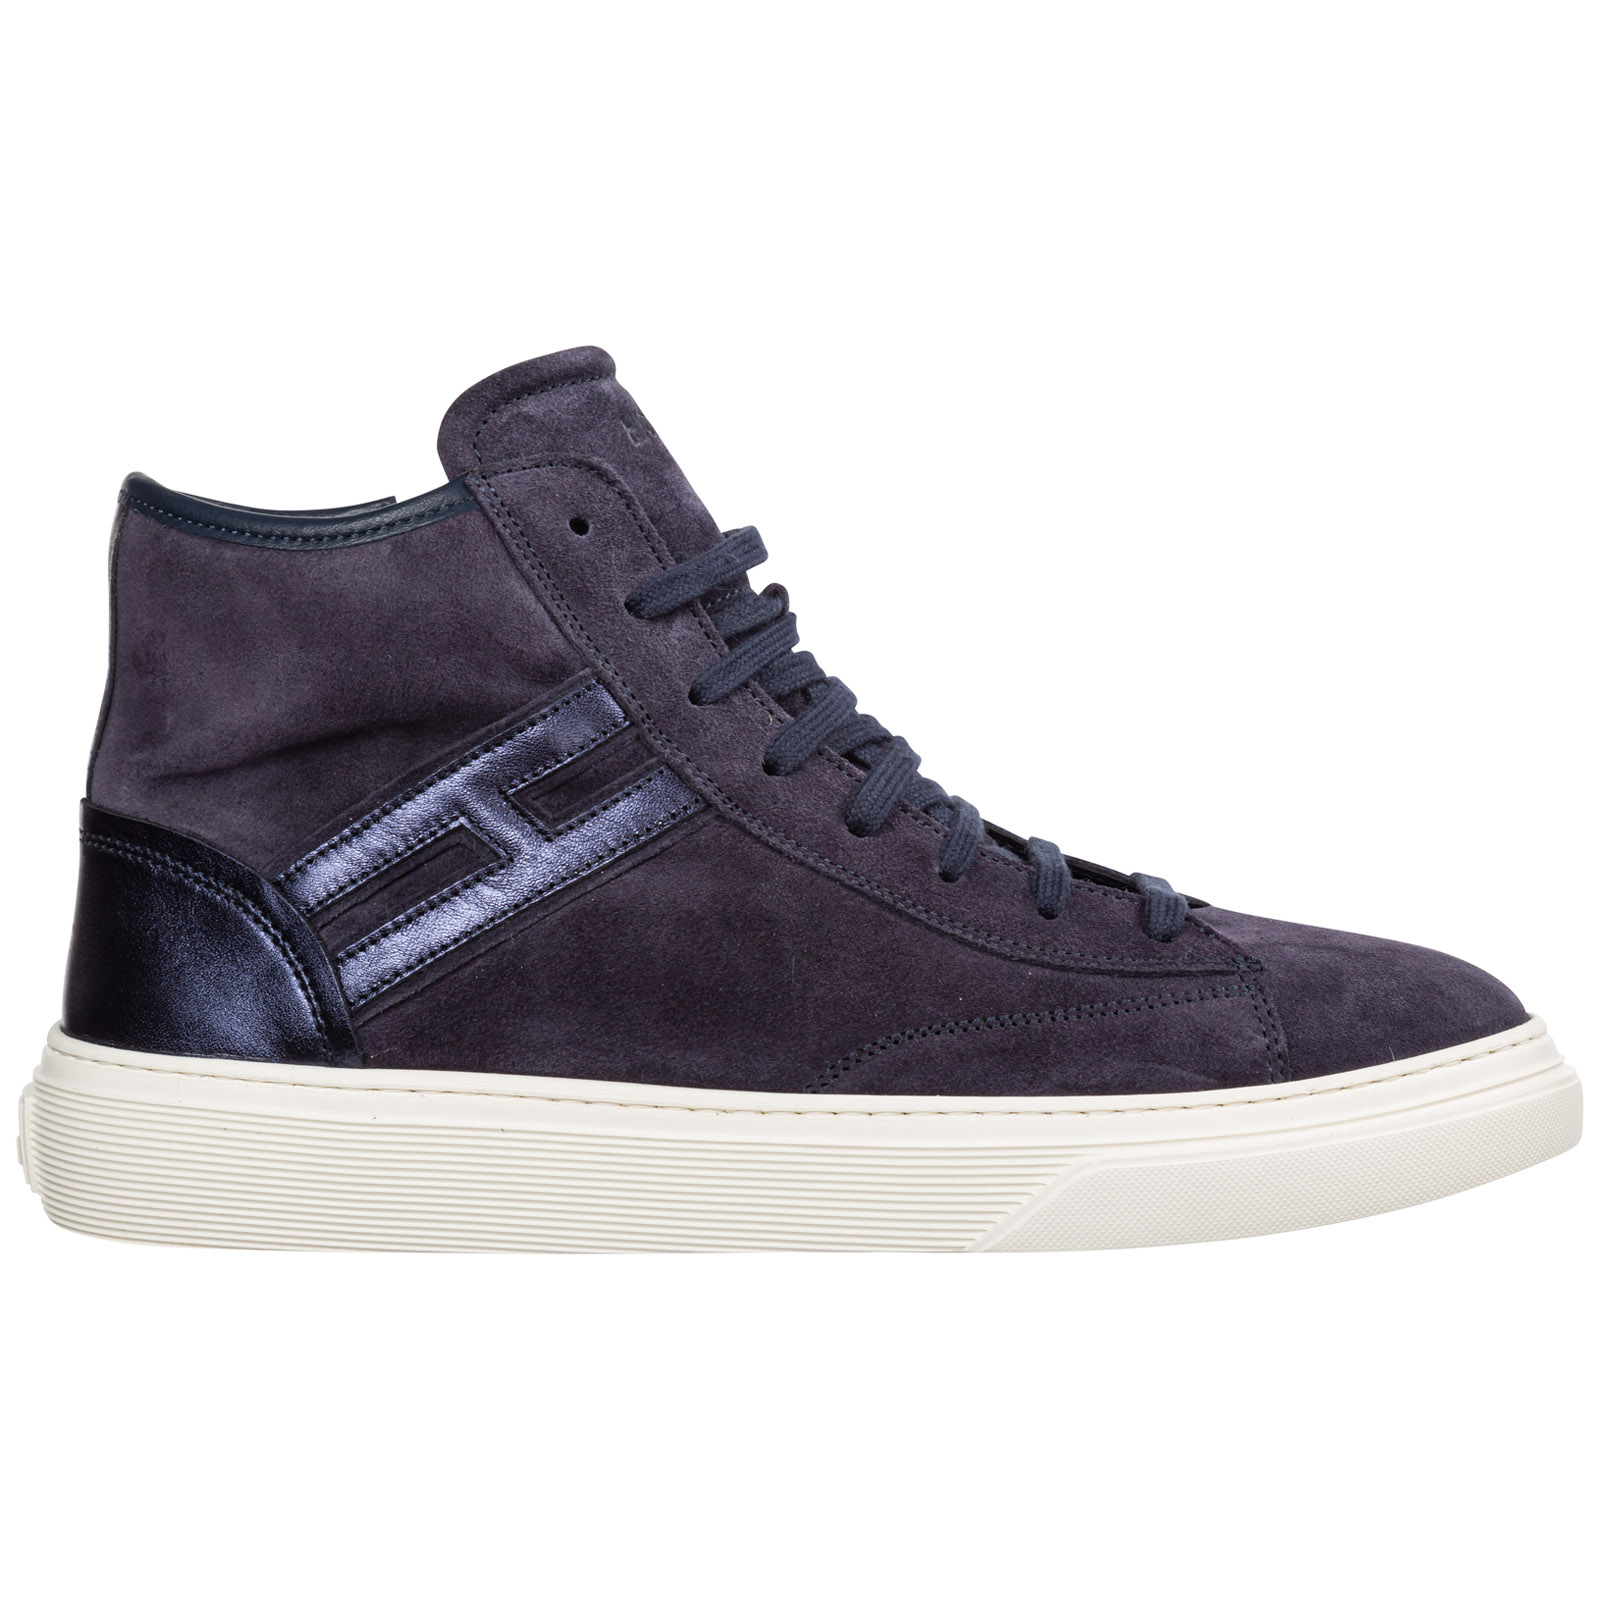 Hogan Sneakers BOYS SHOES BABY CHILD HIGH TOP SNEAKERS SUEDE J365